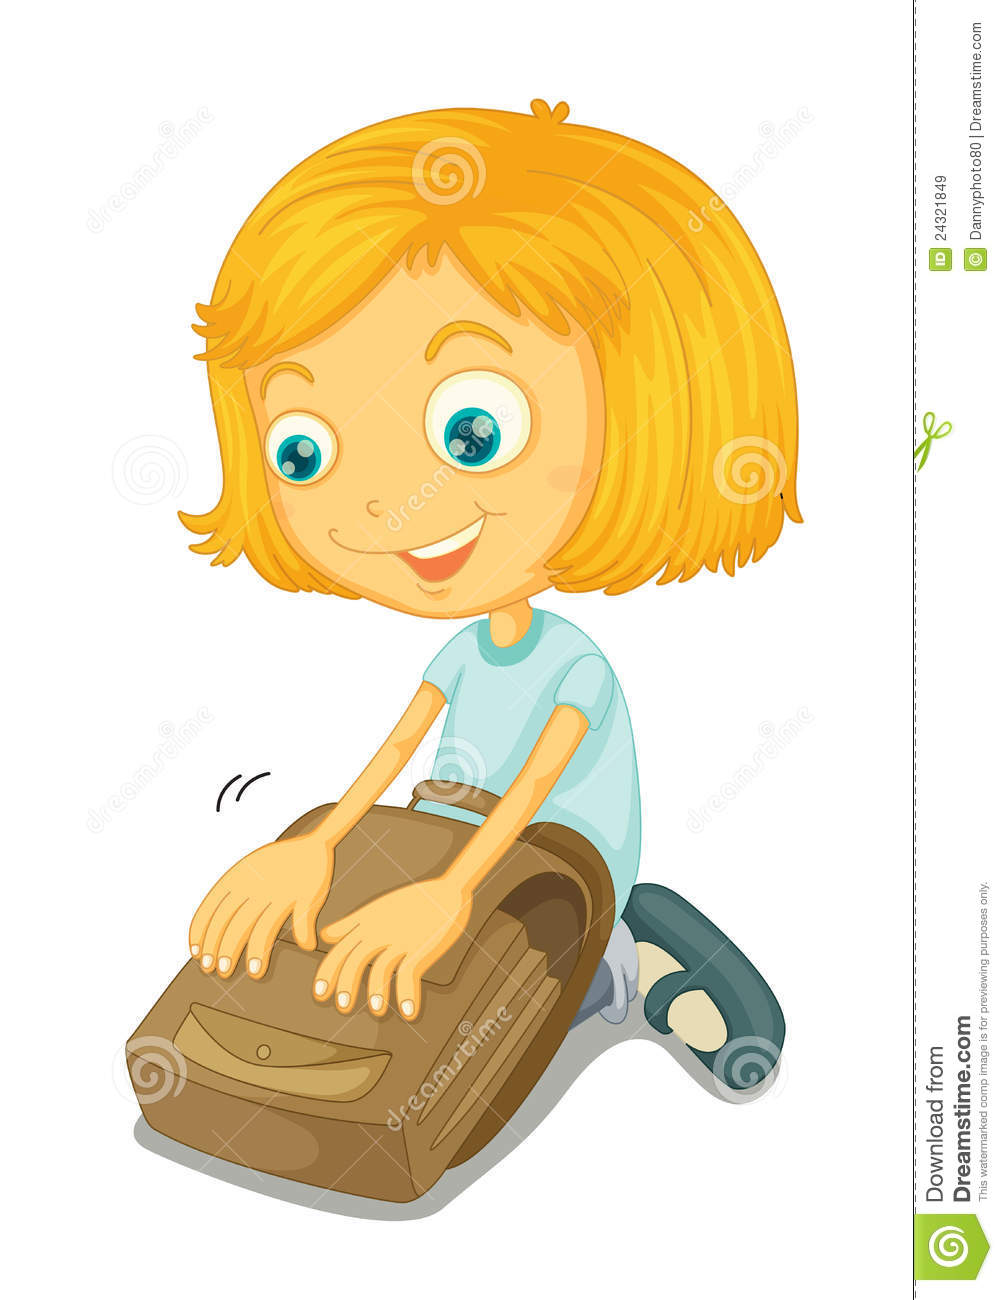 Picture of a girl preparing for school clipart vector free stock Girl Preparing For School Clipart vector free stock